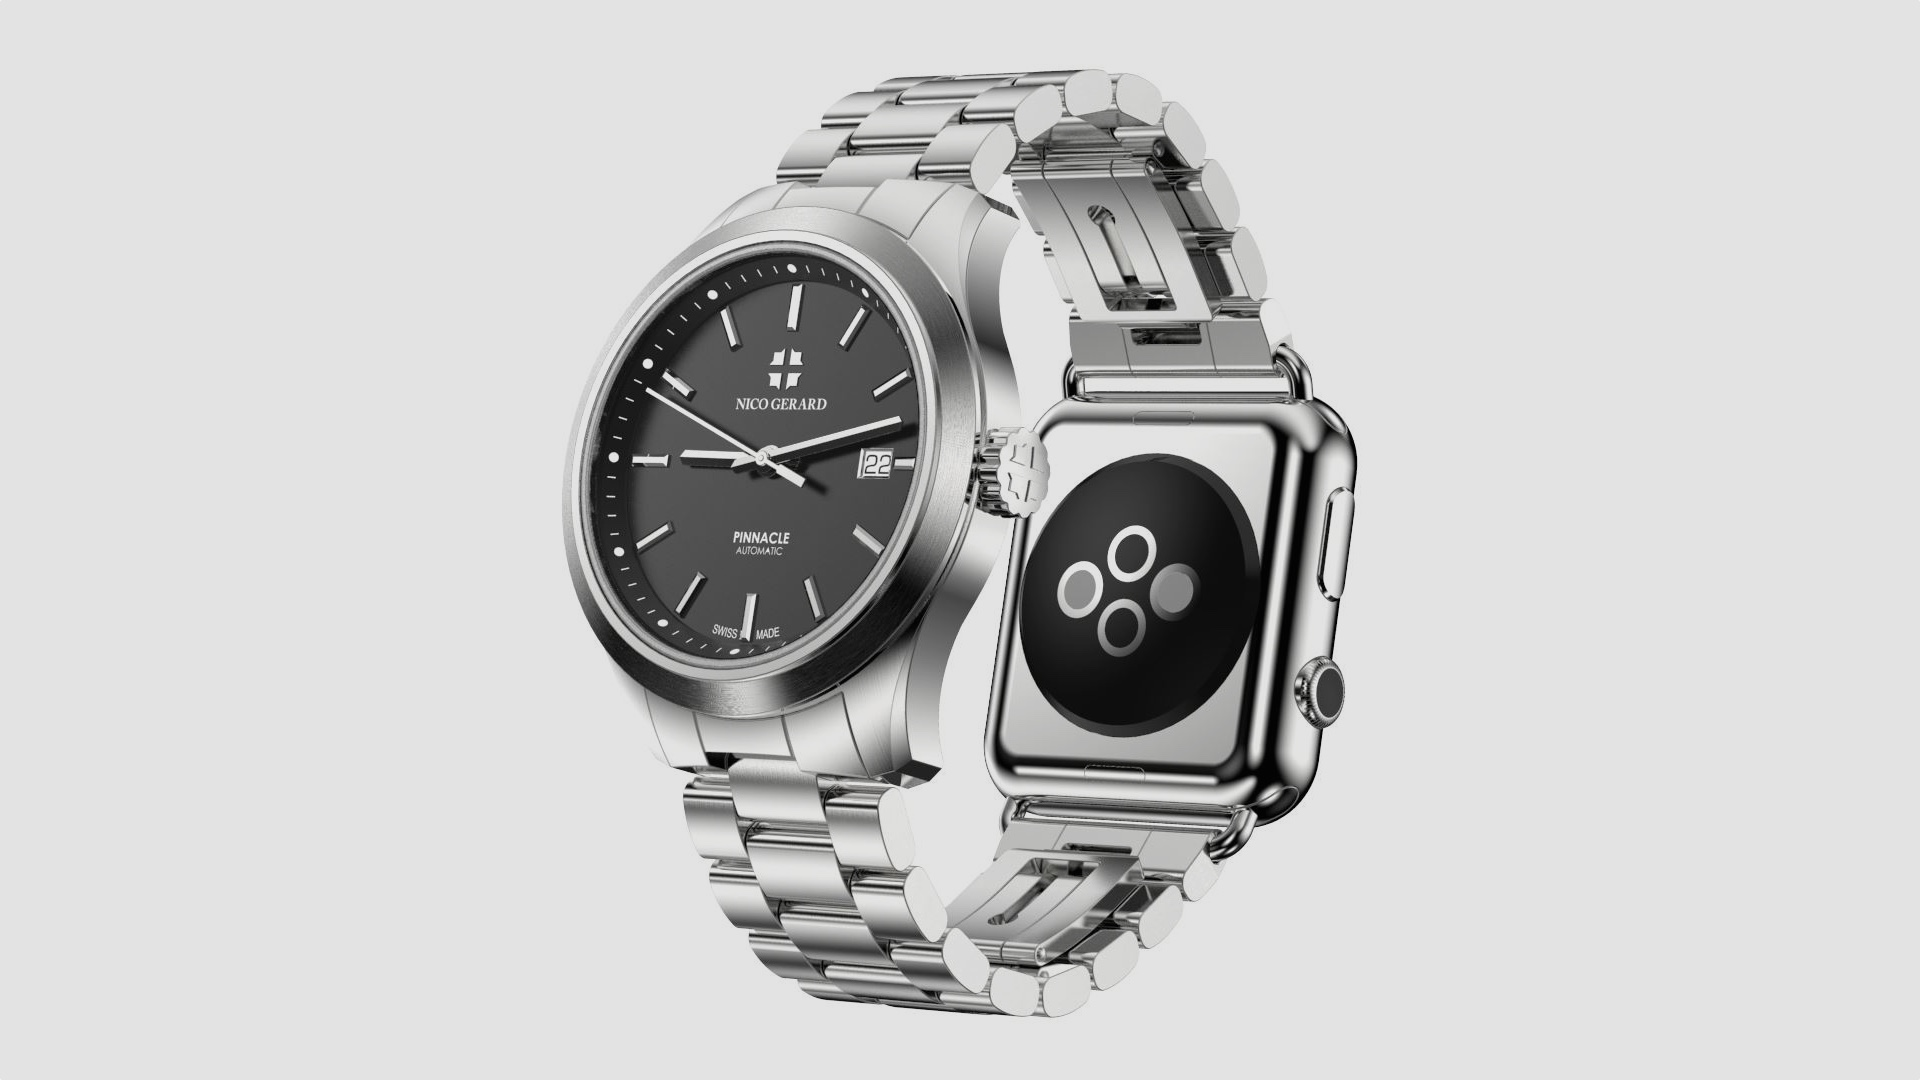 Pinnacle watch comes with Apple Watch